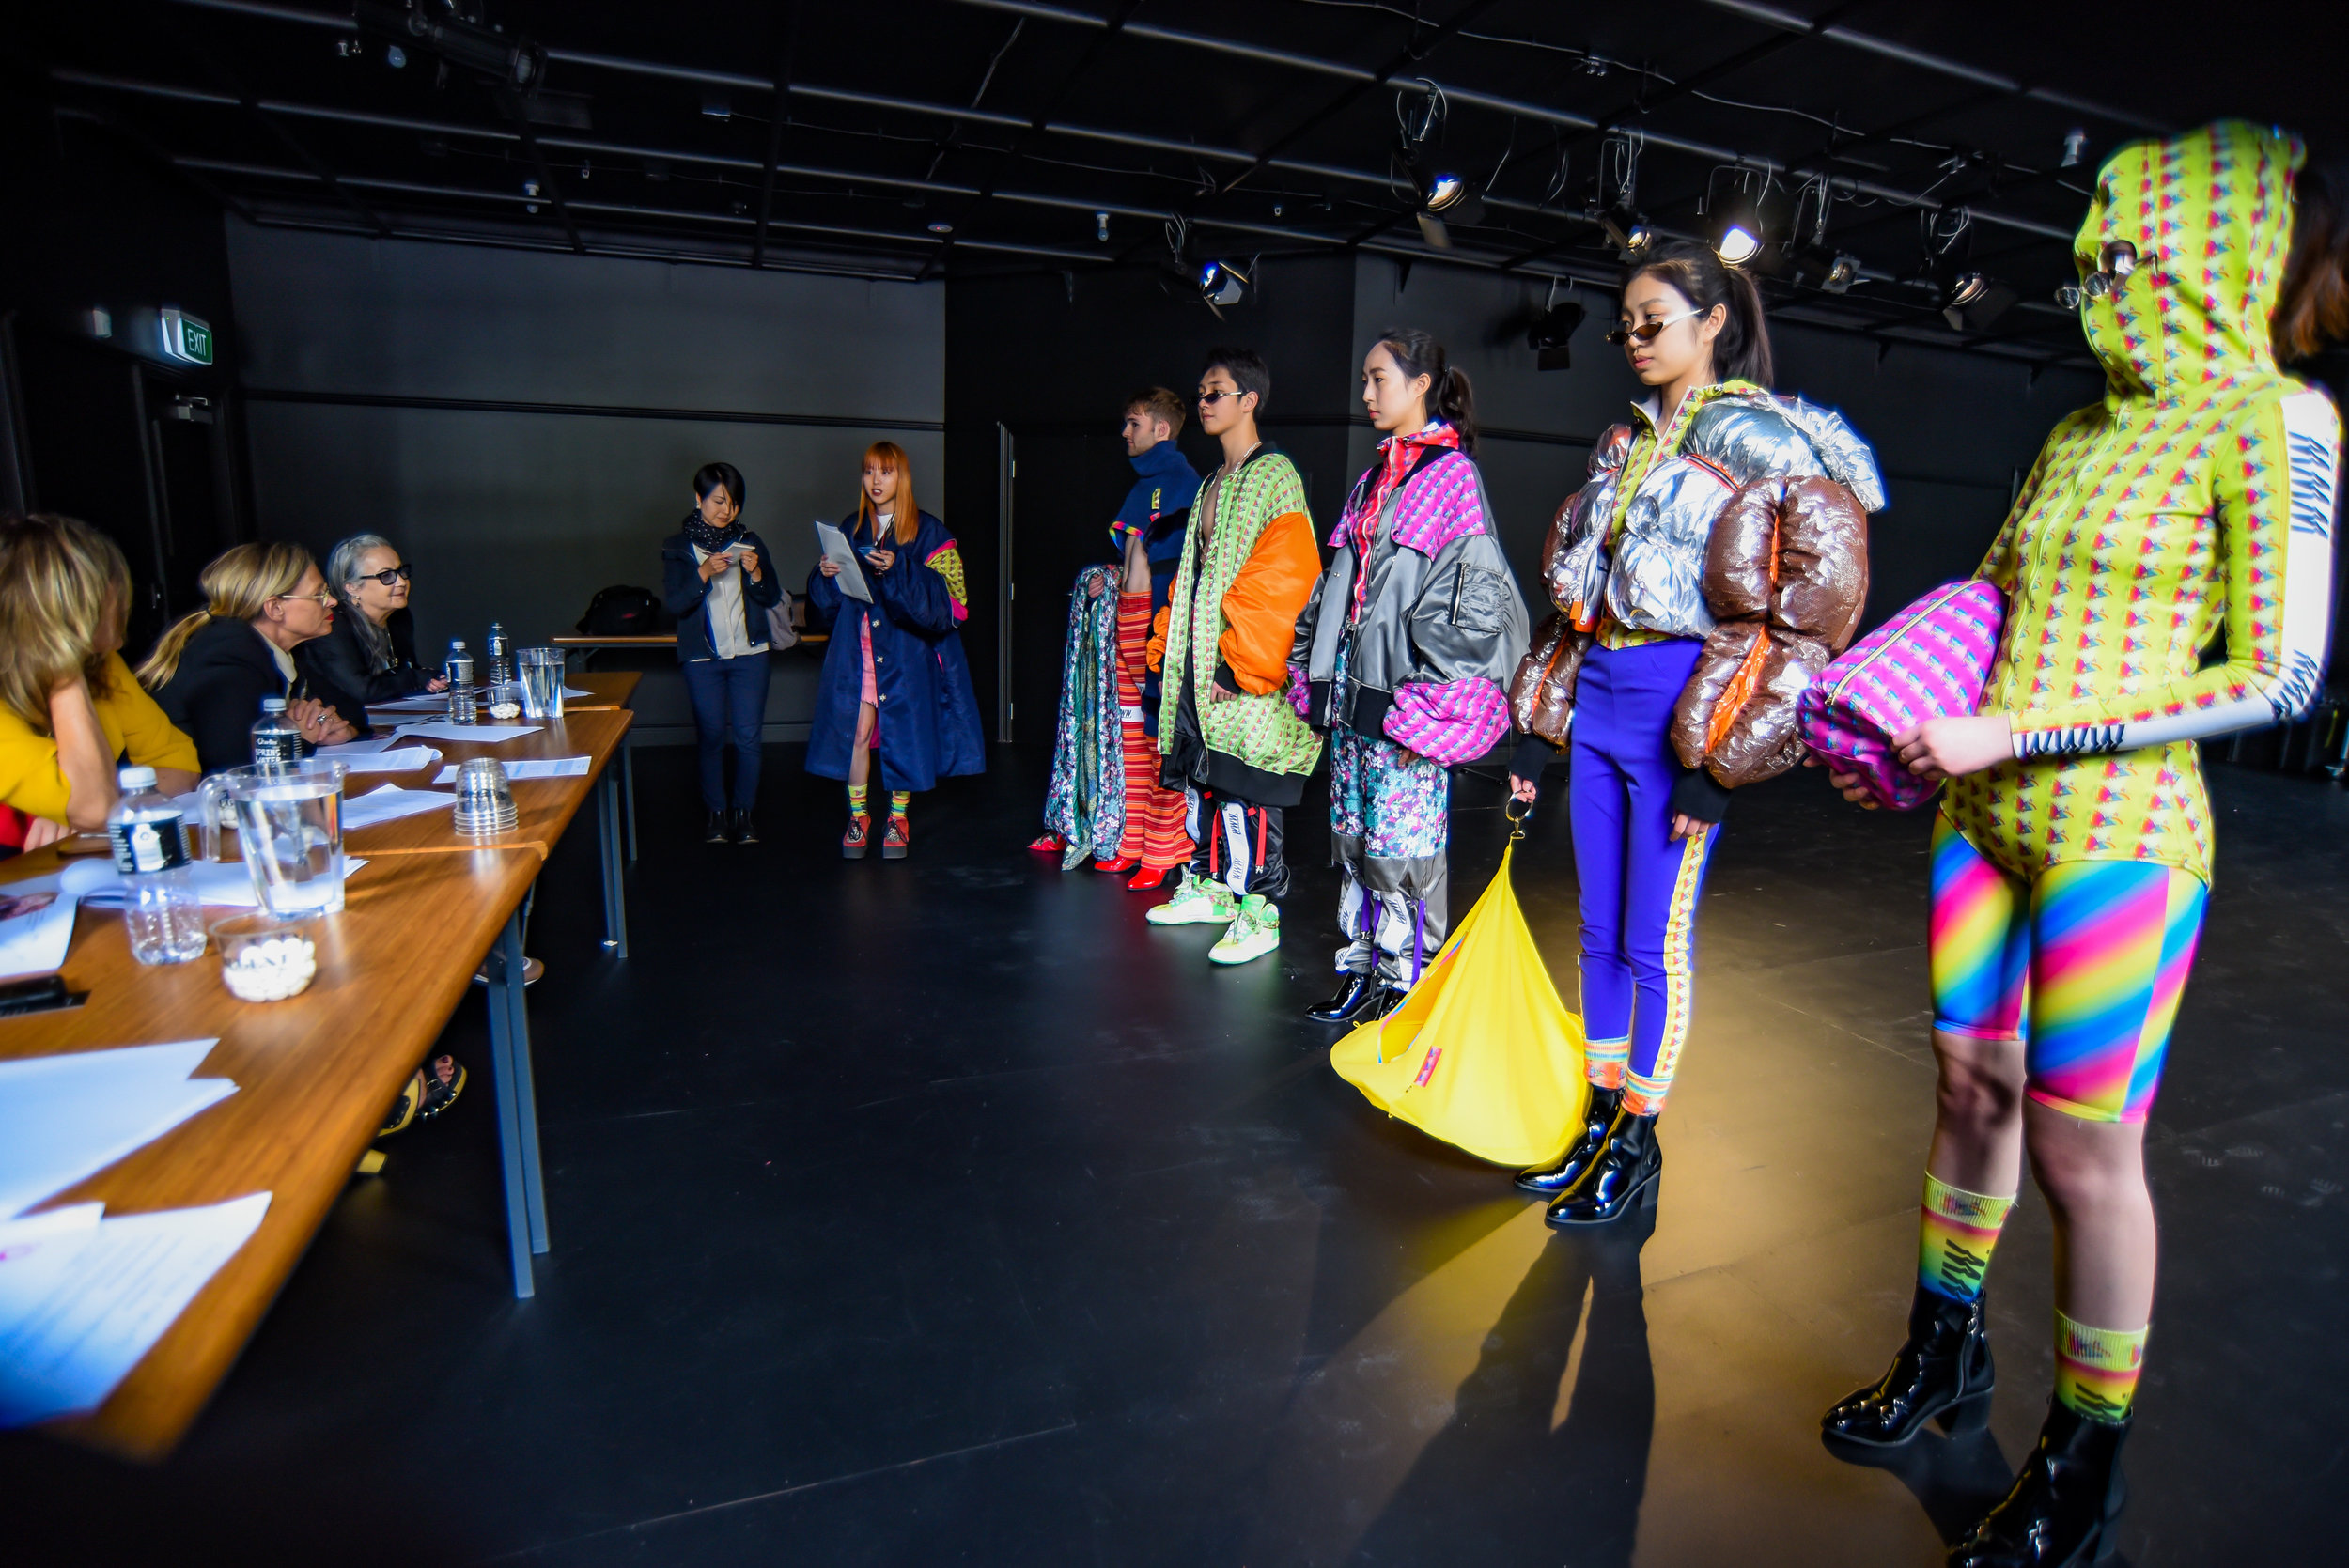 Minori Yanagase (Osaka Bunka Institute of Fashion) presents her collection on judging day. photo credit: Chris Sullivan.